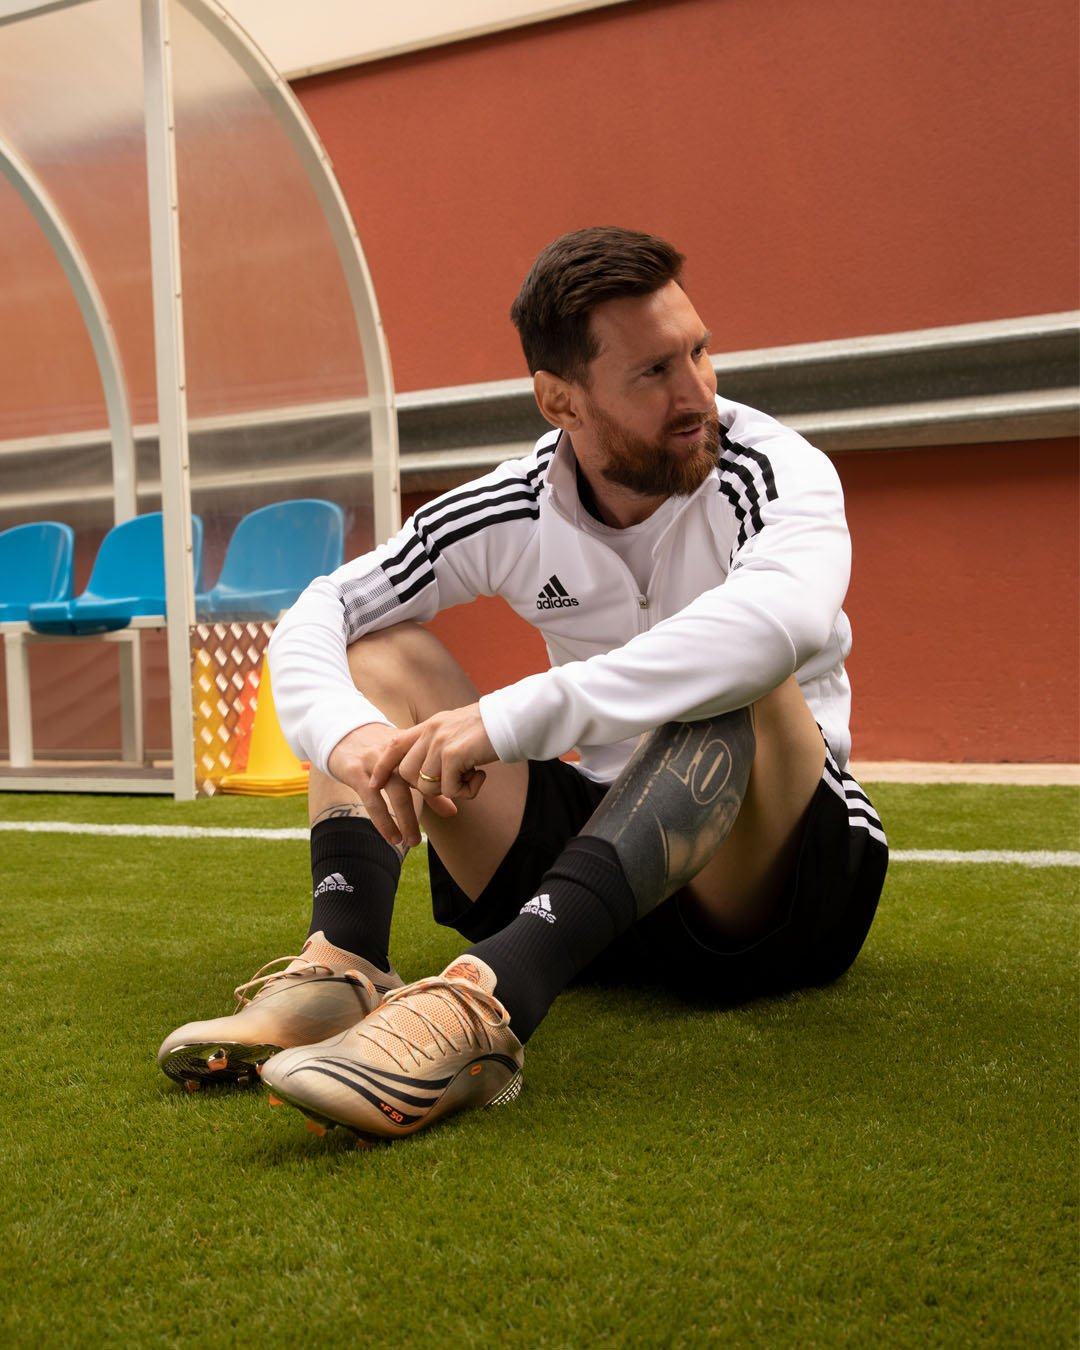 Adidas release special edition boots for Messi for Copa America ...